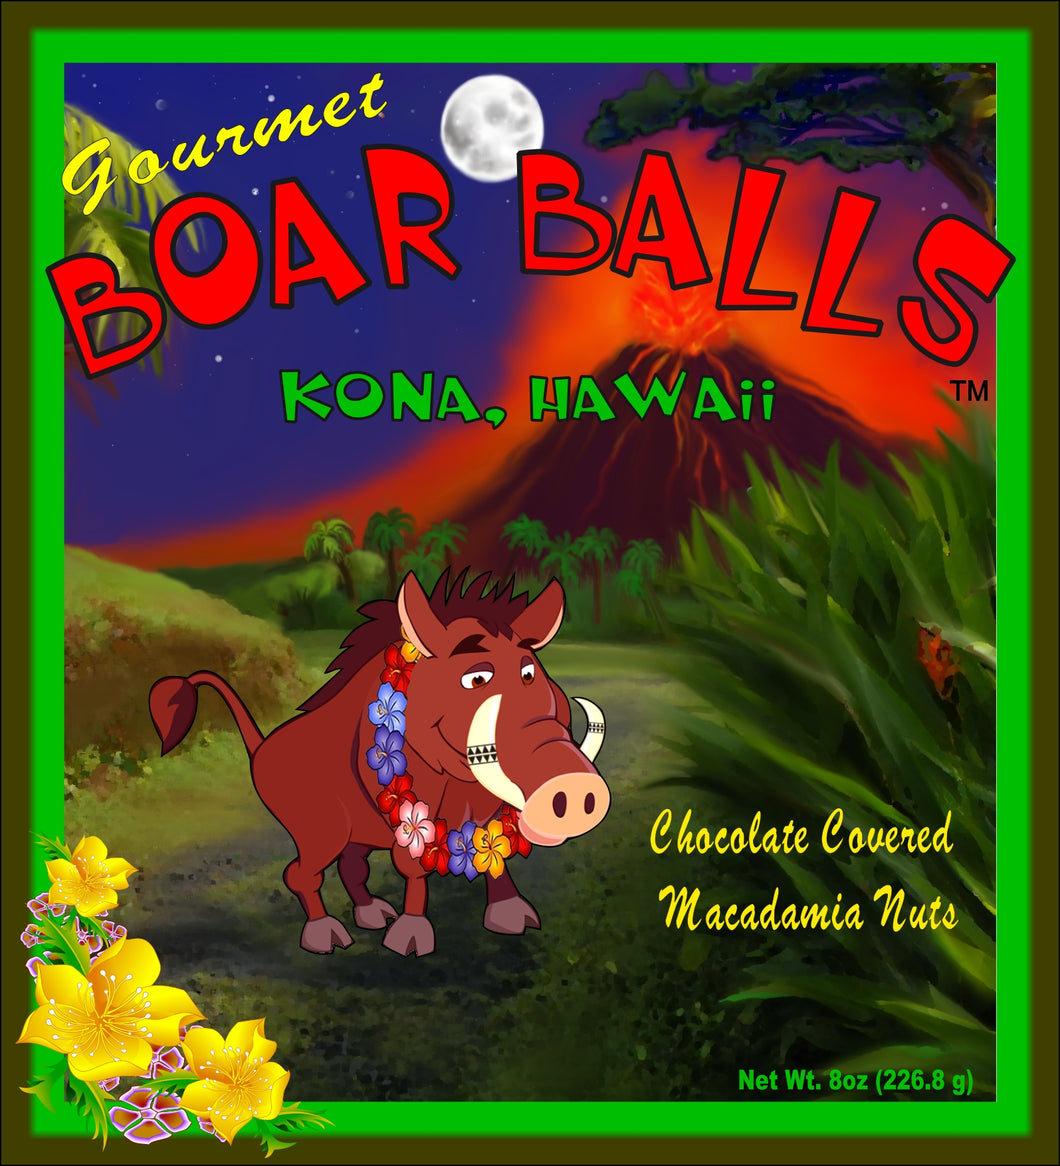 Banana Boar Balls - The Original Donkey Ball Store